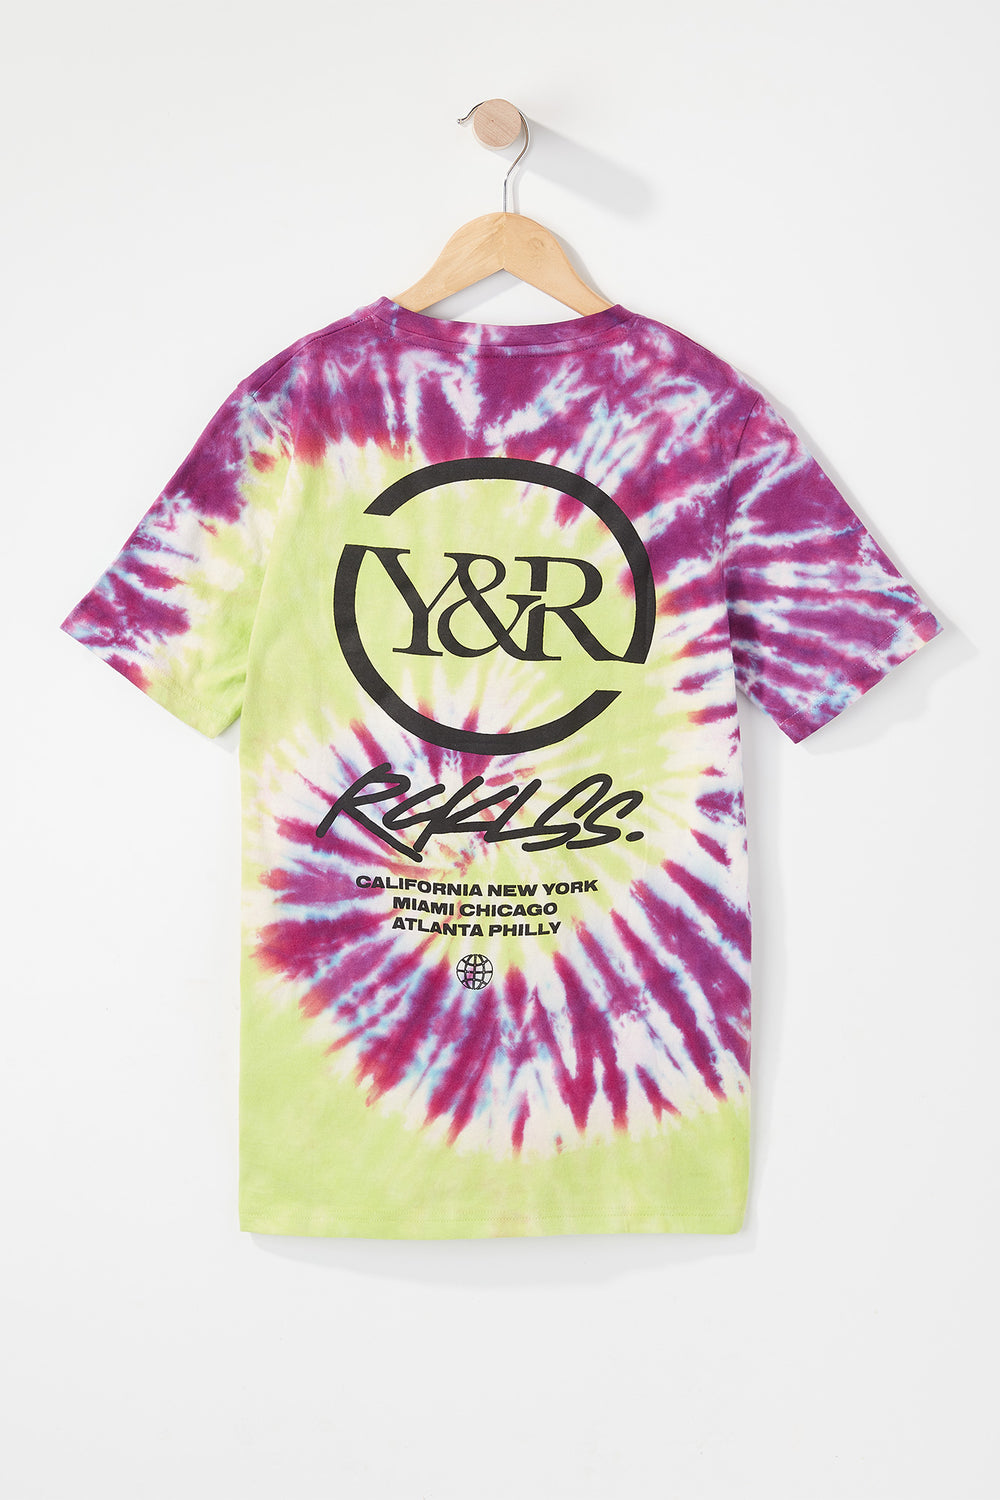 Young & Reckless Boys Multi-CityTie-Dye T-Shirt Green